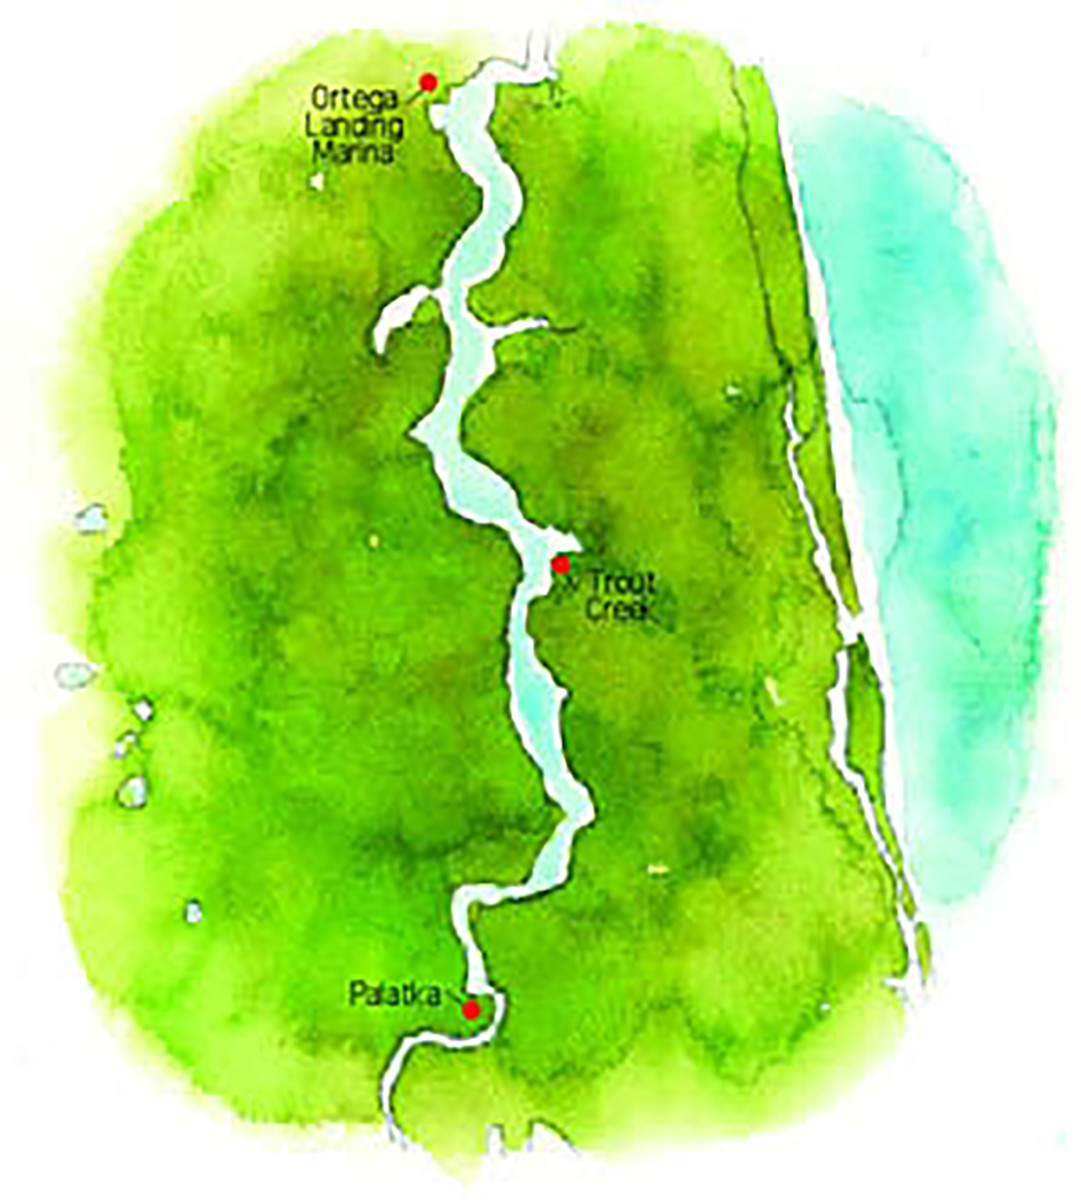 A map of the St. Johns River, showing our three stops.